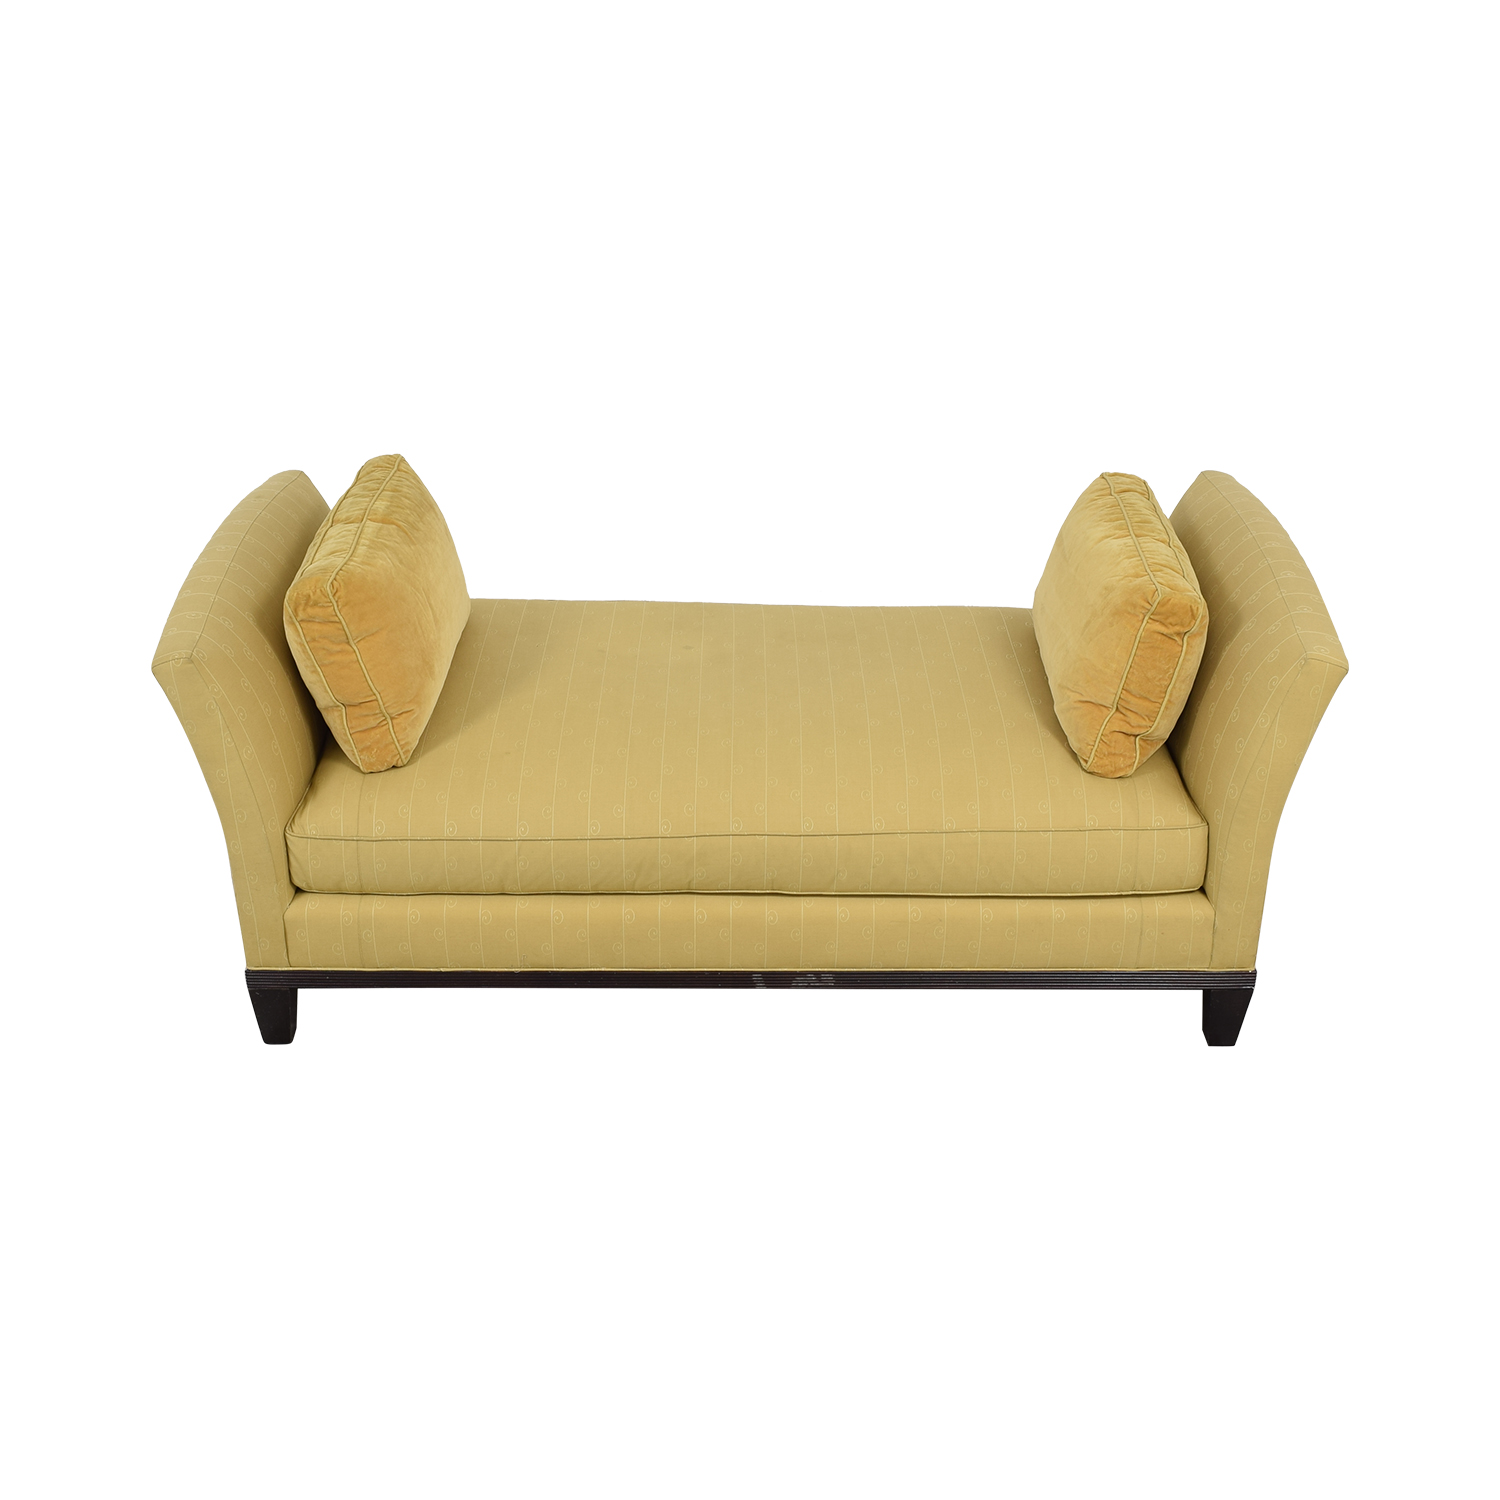 Baker Furniture Sleigh Daybed sale